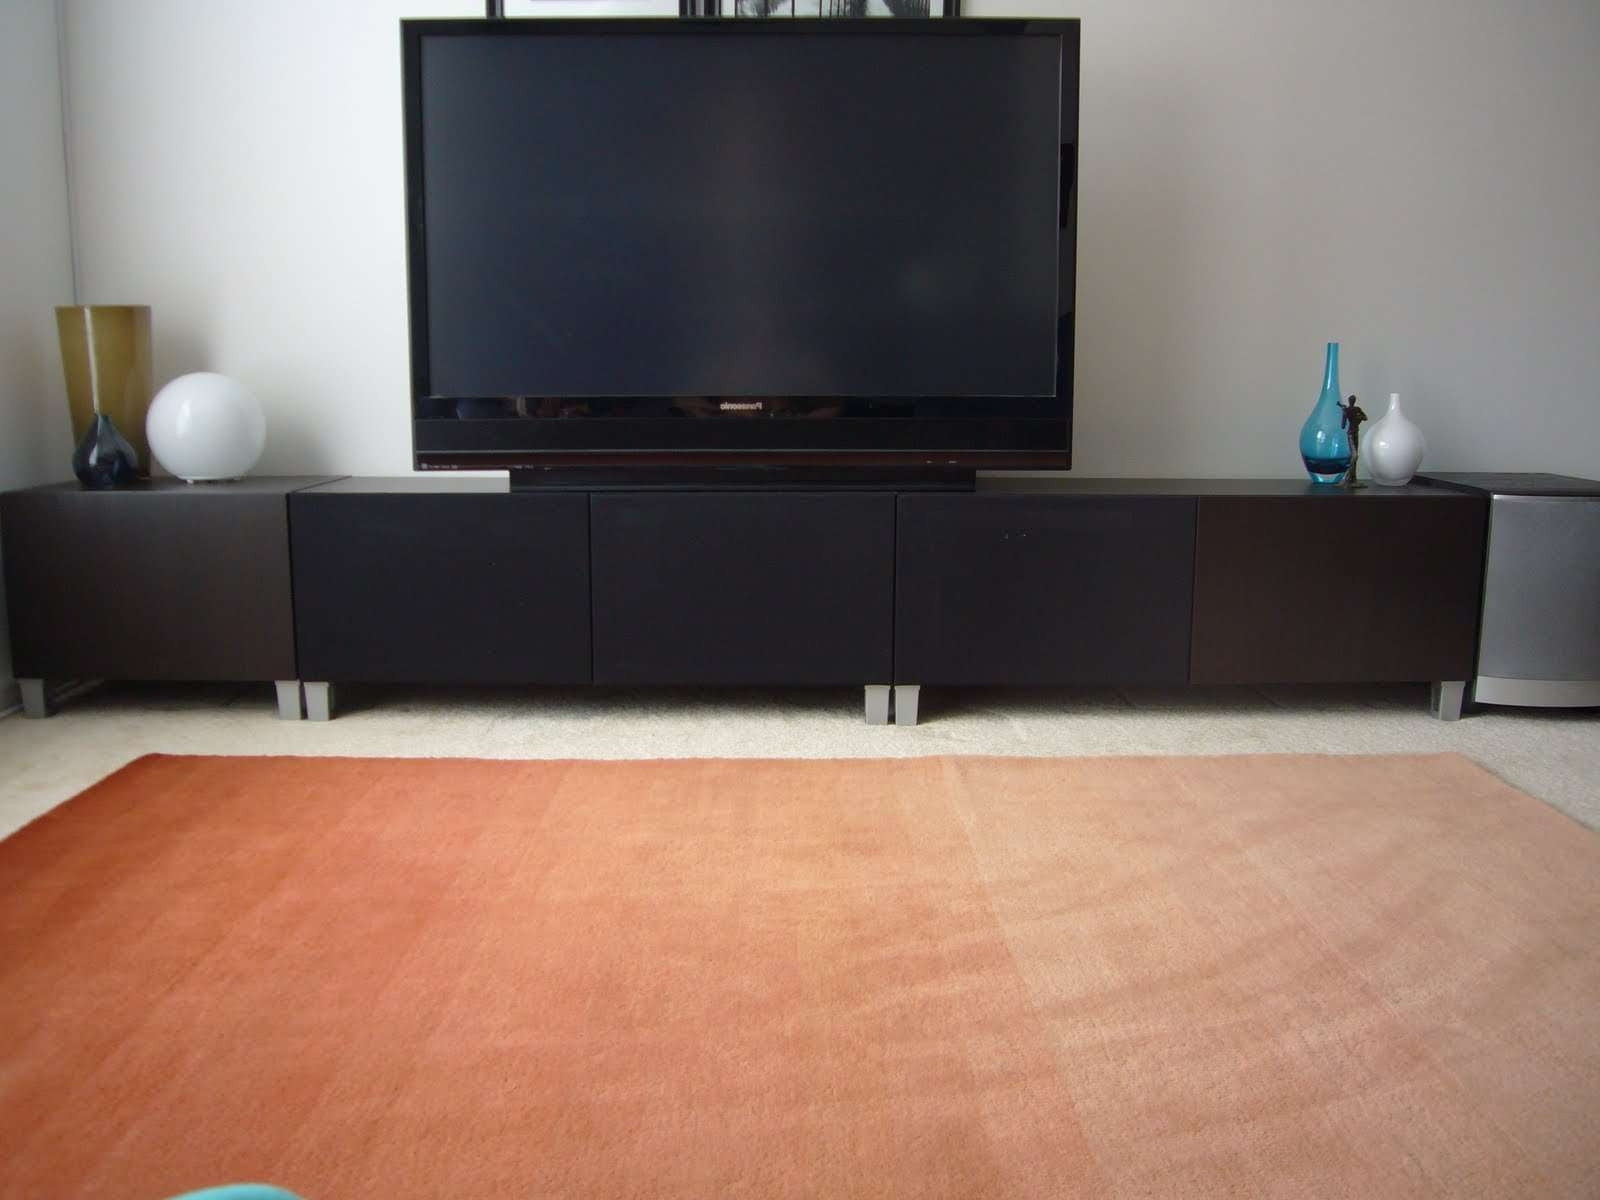 Ikea Besta Tv Stand With Black Tv O Top Long Black Wooden Cabinet Pertaining To Long Tv Stands Furniture (View 7 of 15)